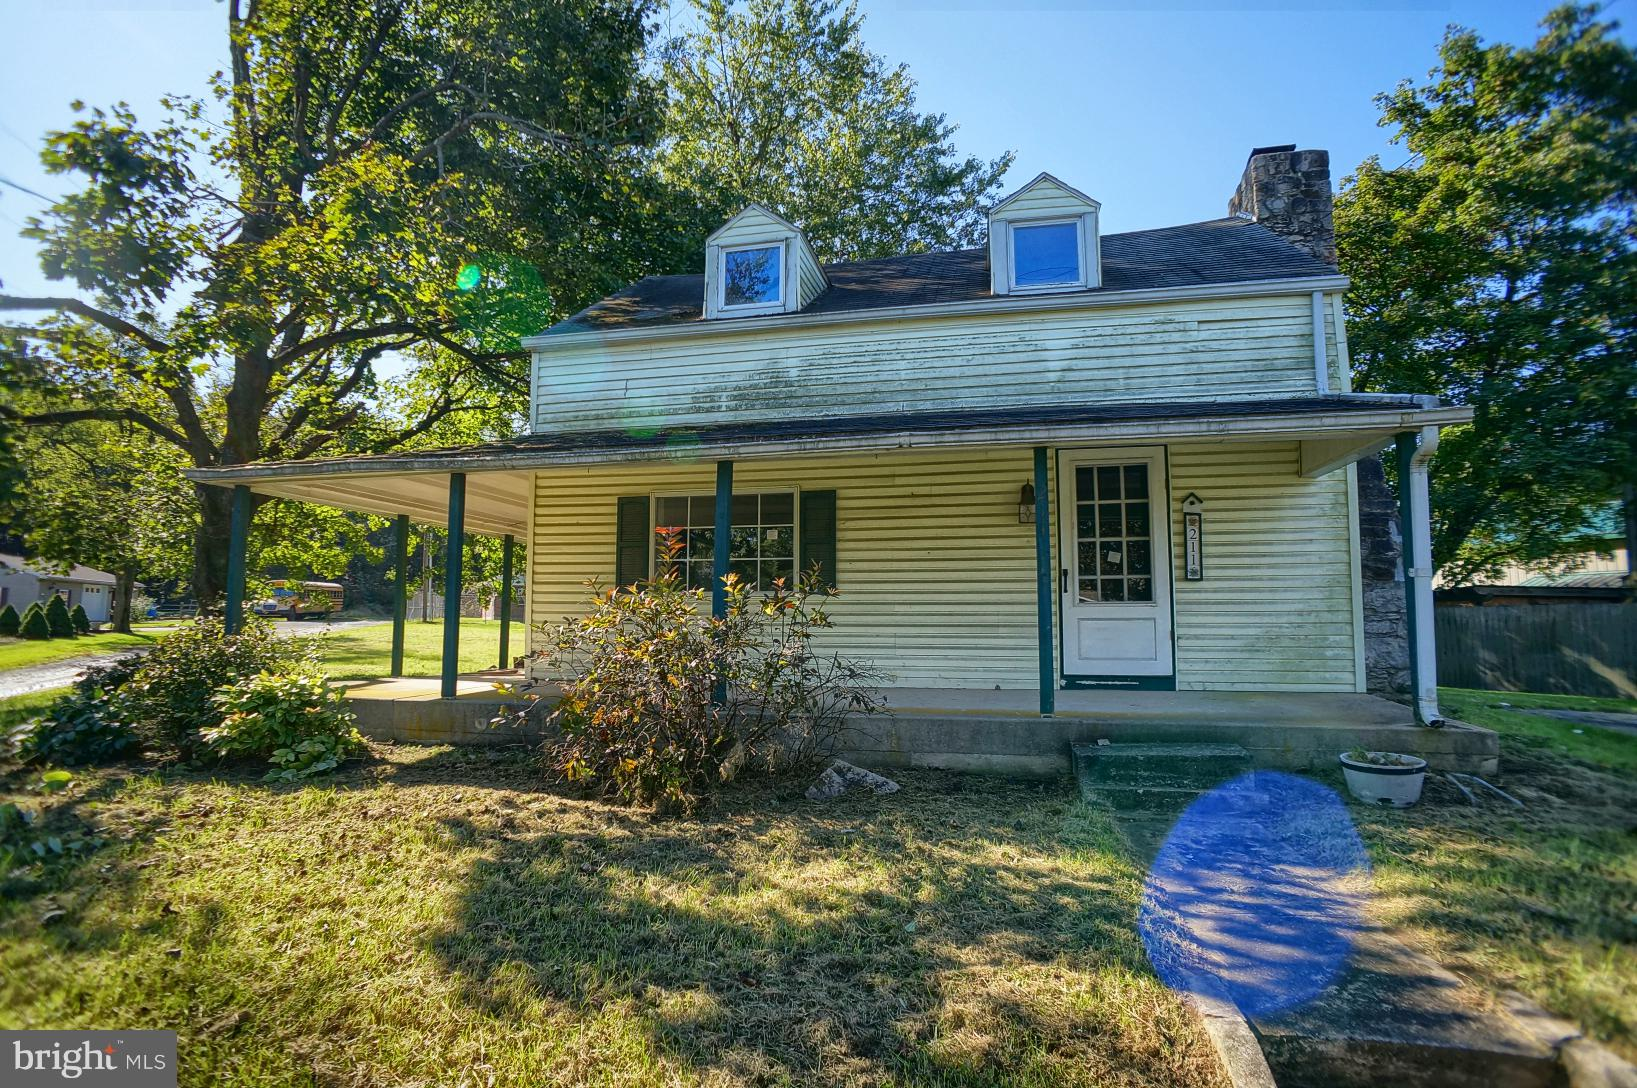 211 W PINE STREET, MOUNT HOLLY SPRINGS, PA 17065